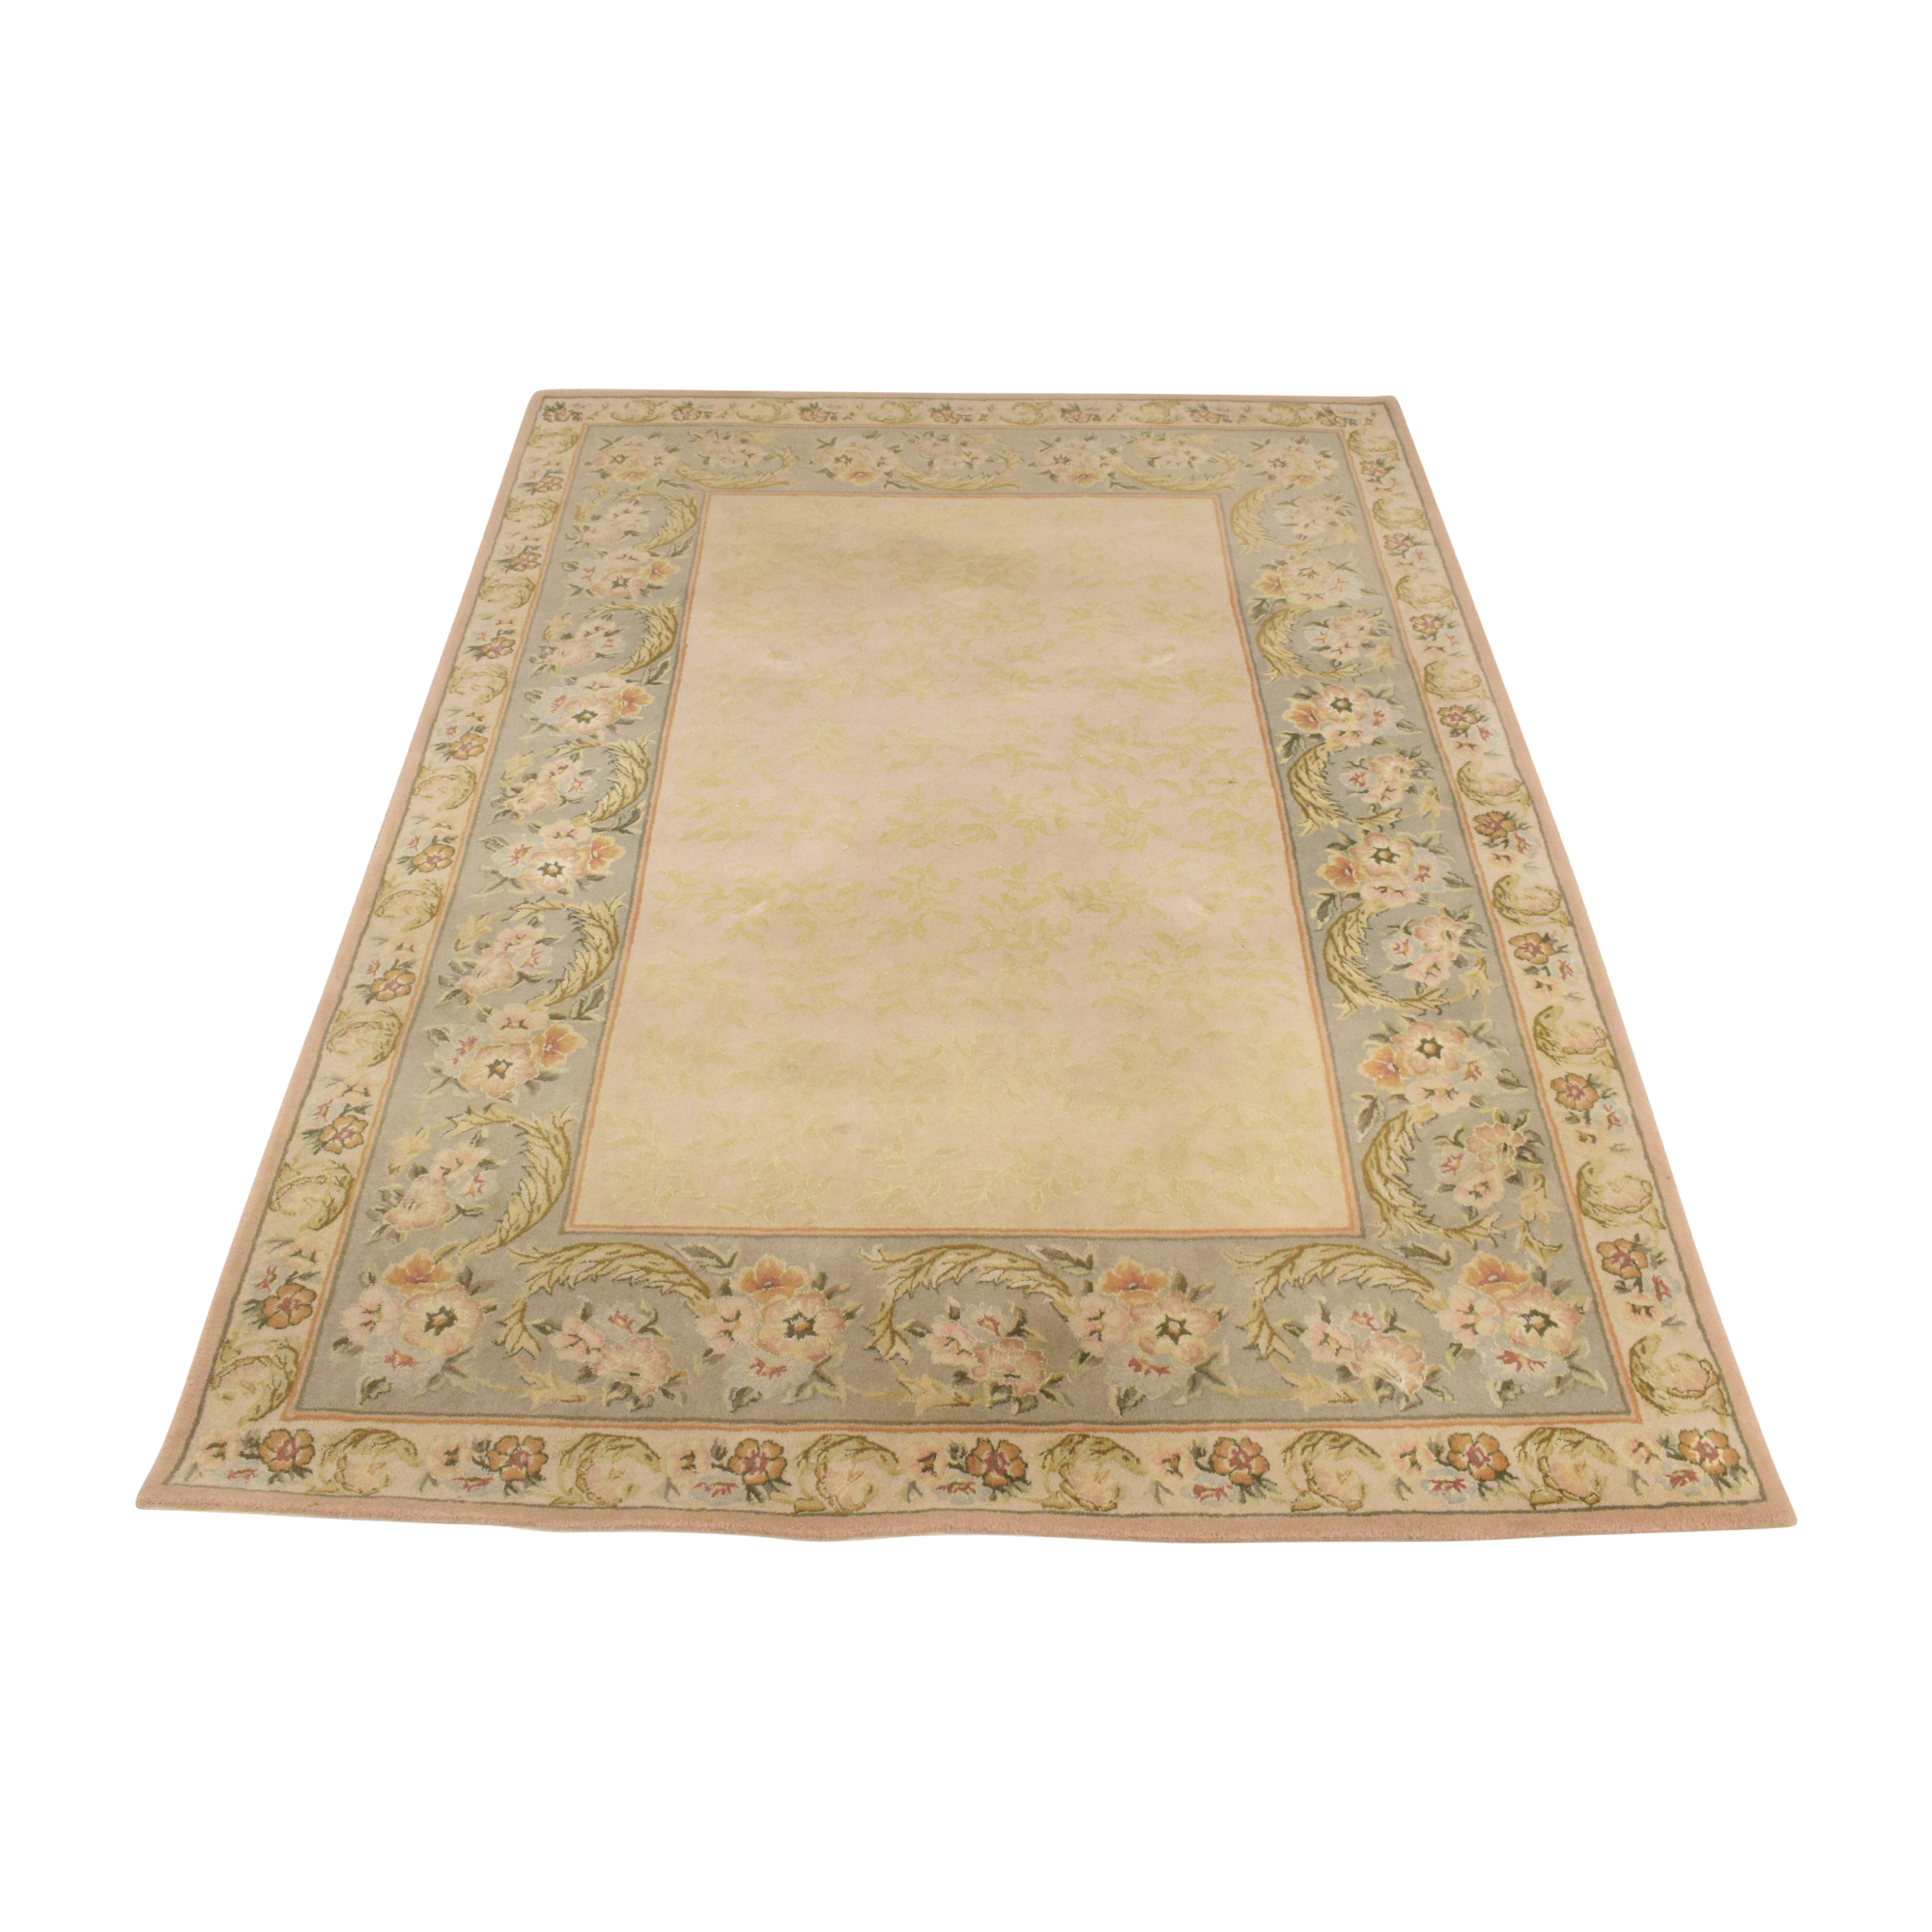 Capel Louvre Area Rug / Decor